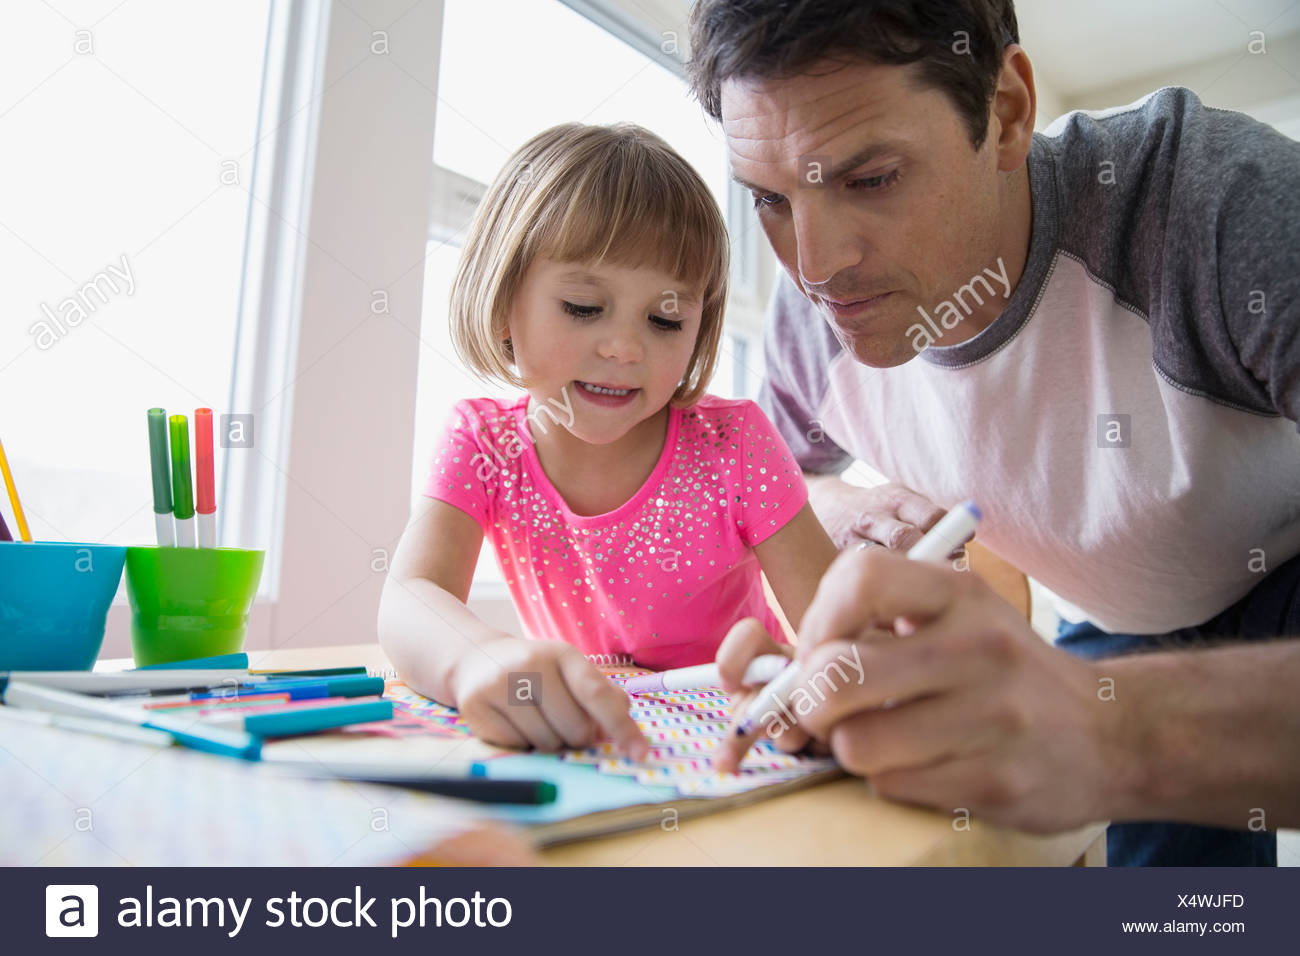 Father and daughter making paper crafts at table - Stock Image